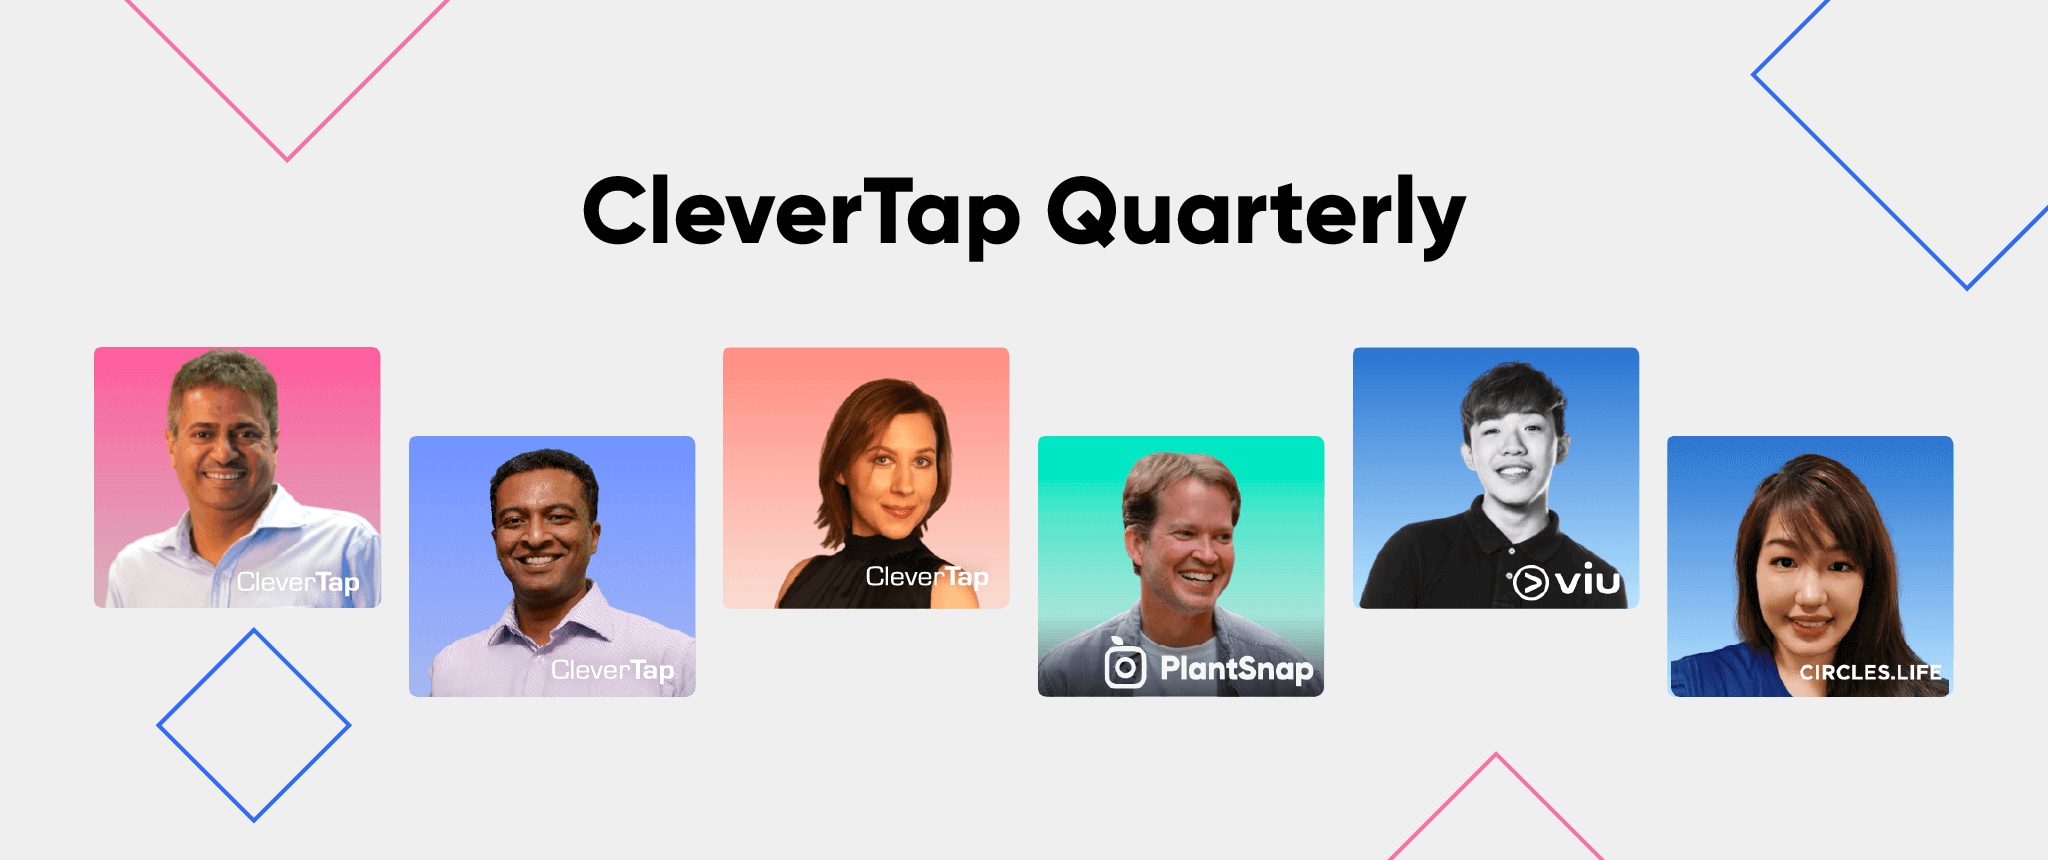 CleverTap Quarterly: Our Latest Innovations & A Sneak Peek at the Roadmap